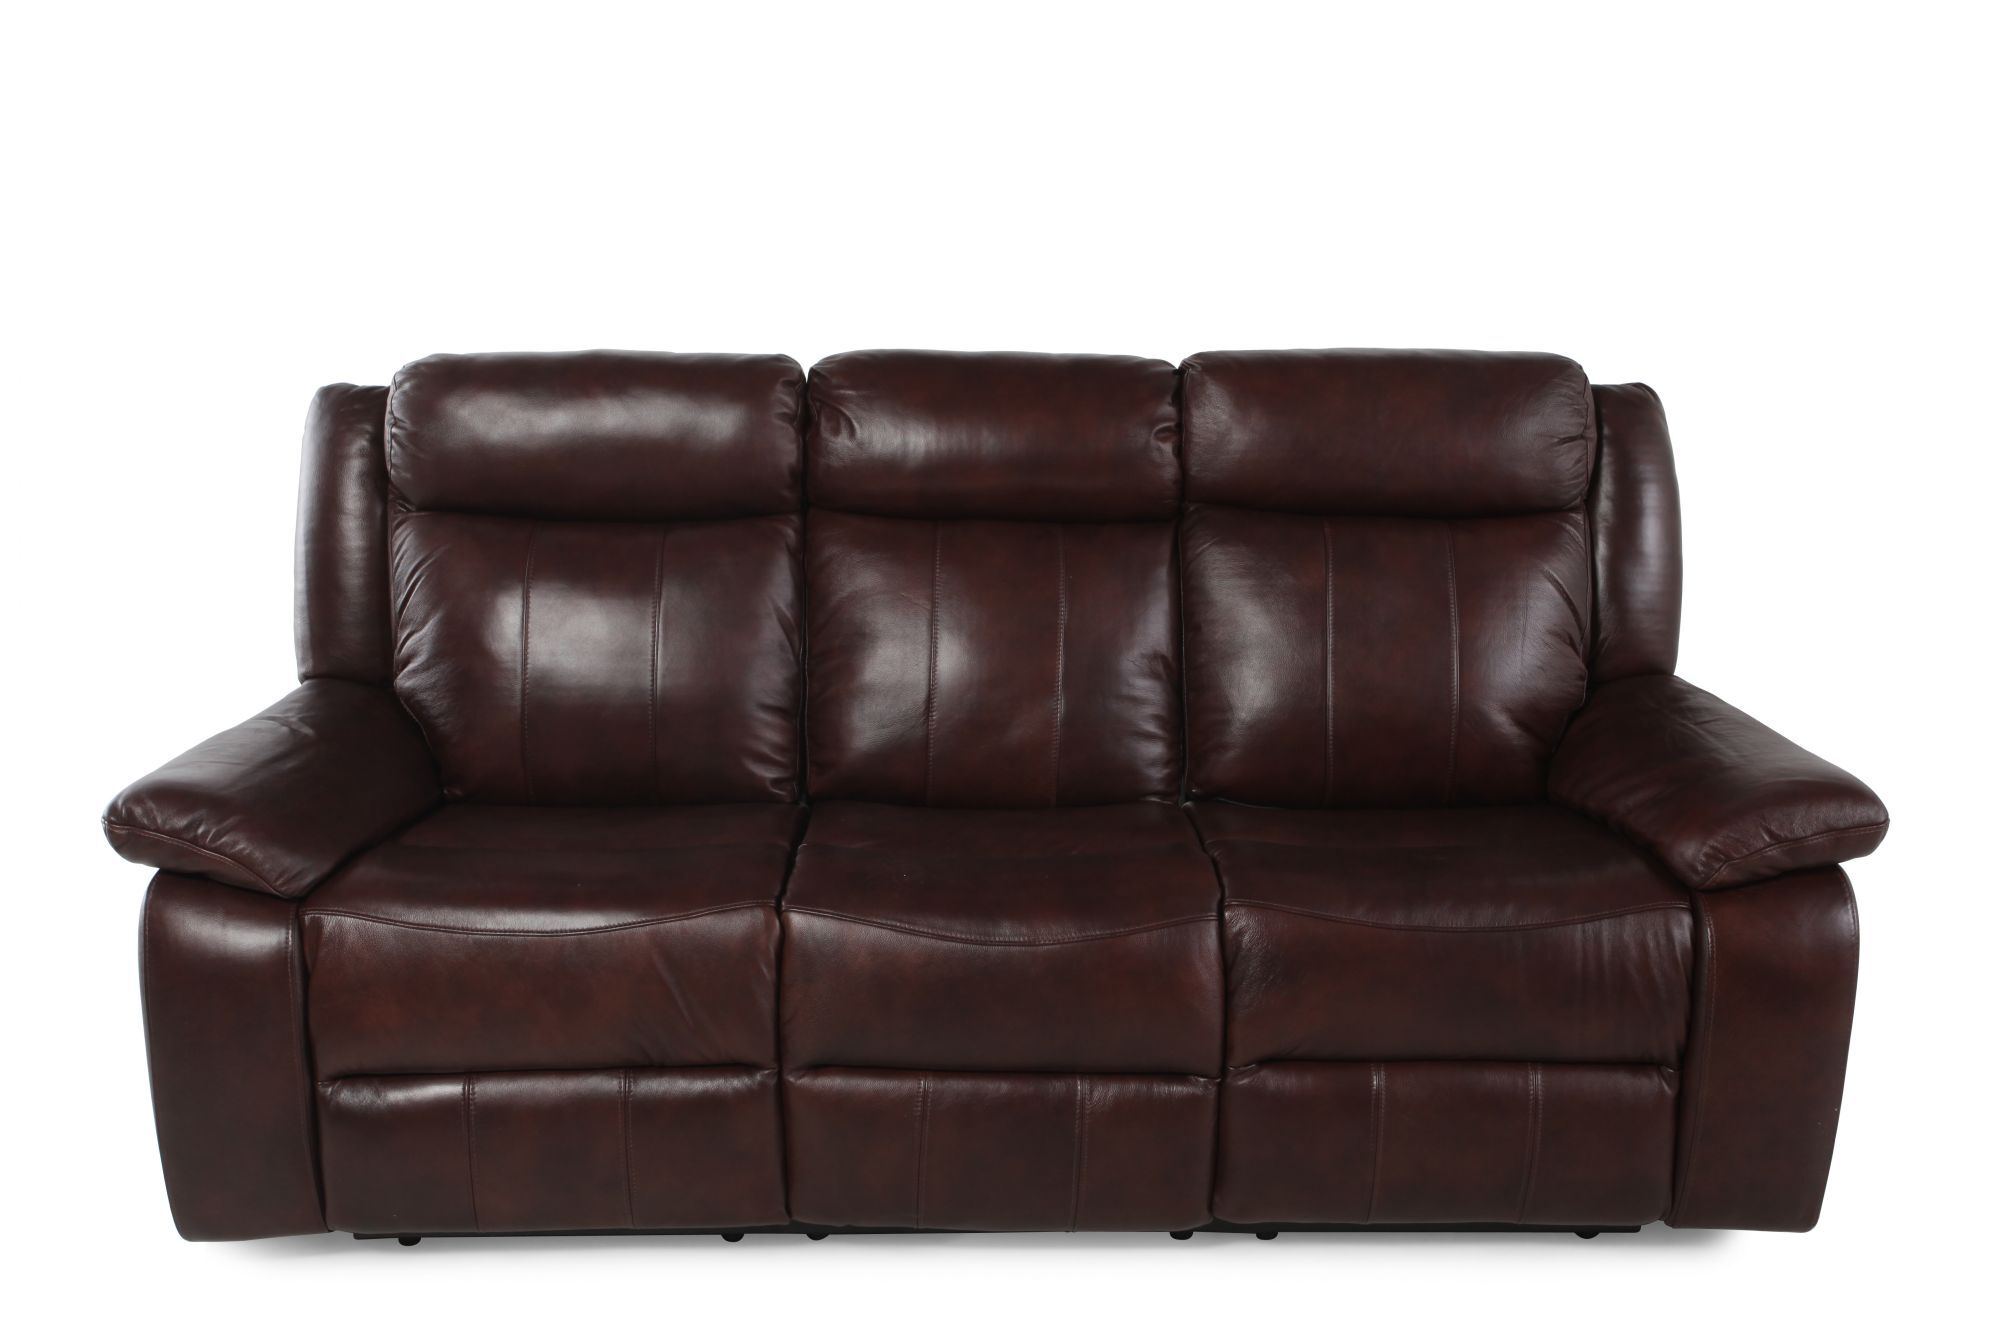 three seater recliner sofa purple contemporary boulevard brown seat power reclining mathis